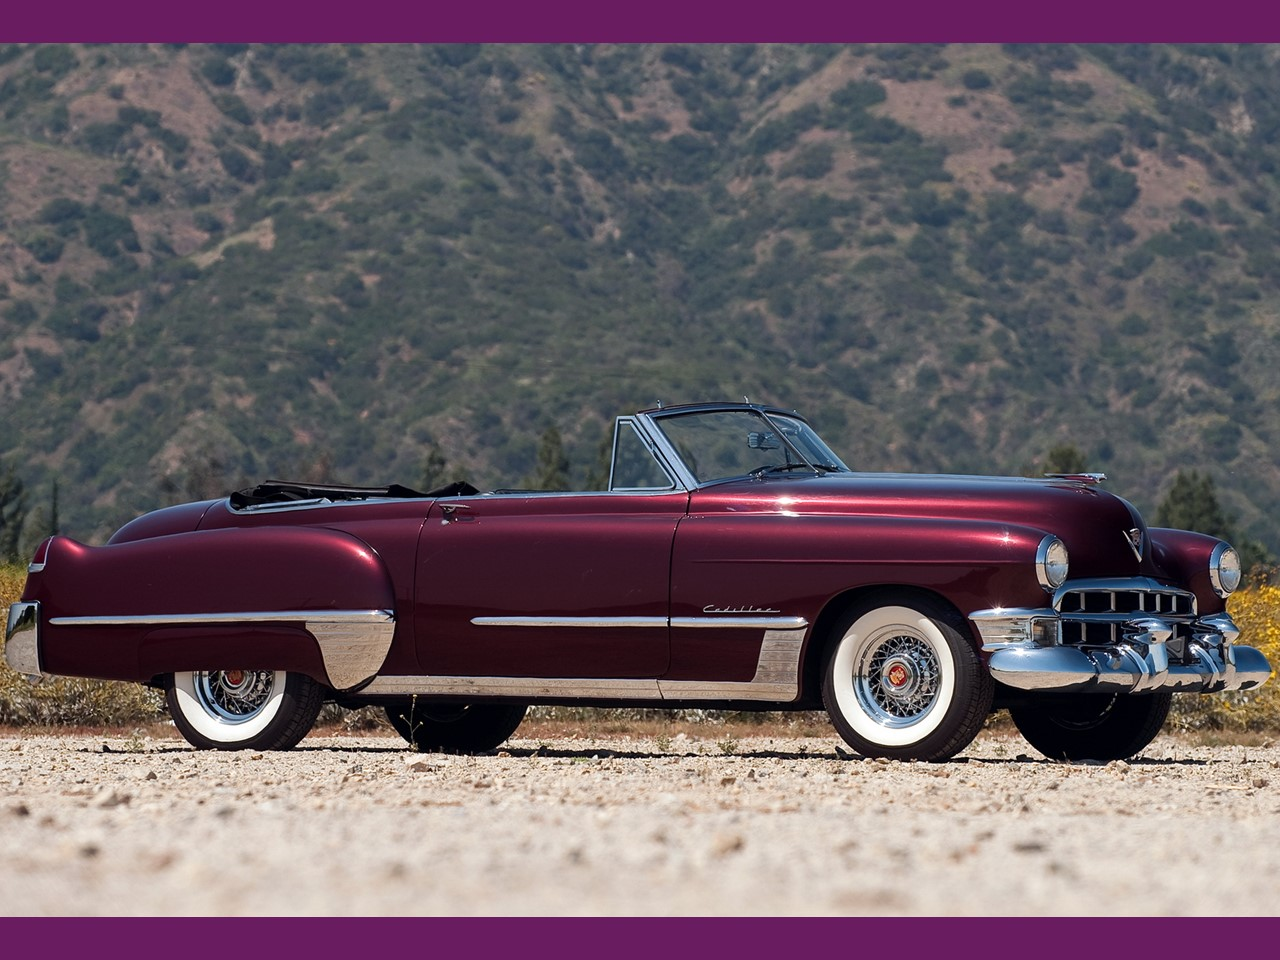 1949 Series 62 convertible